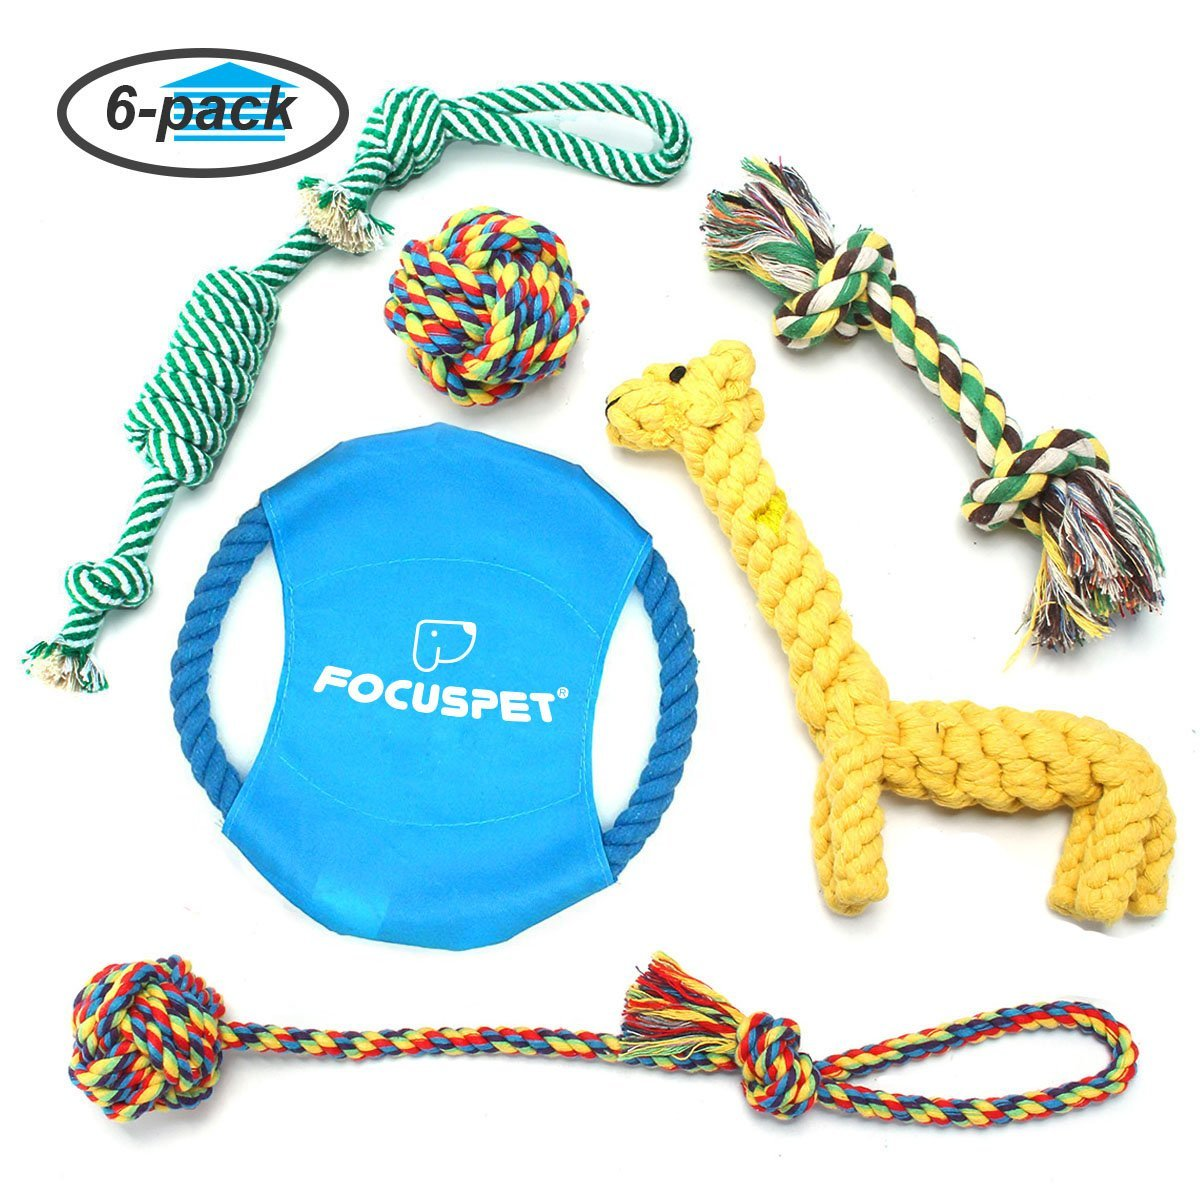 Focuspet Braided Rope Toy Set